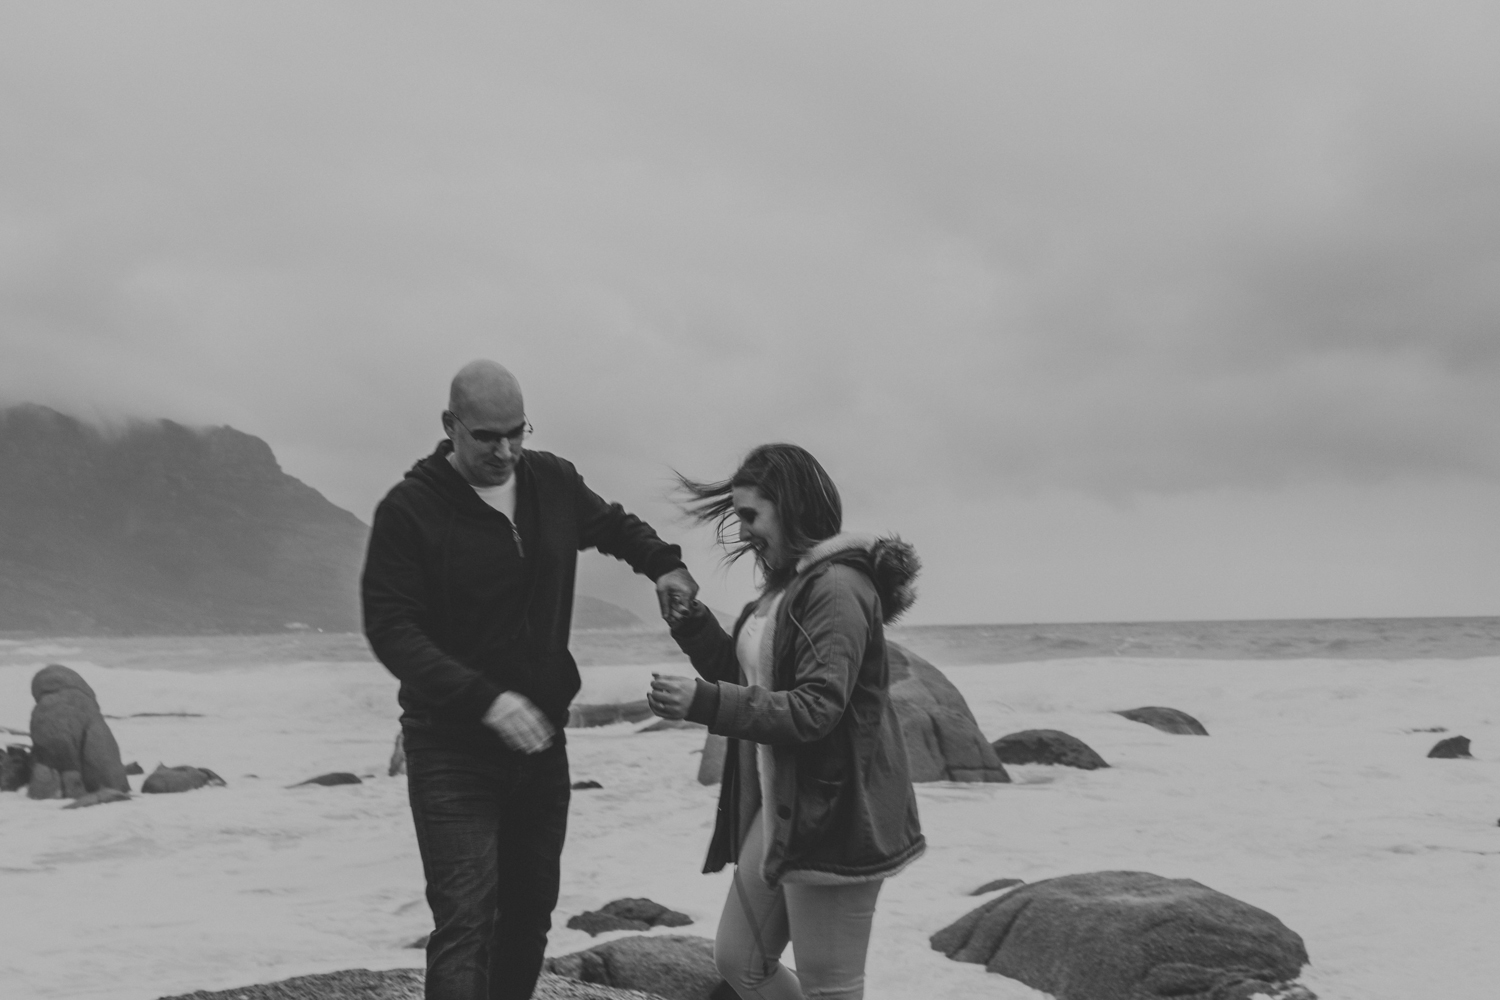 Enagagement photography Cape Town- Bianca Asher Photography-43.jpg